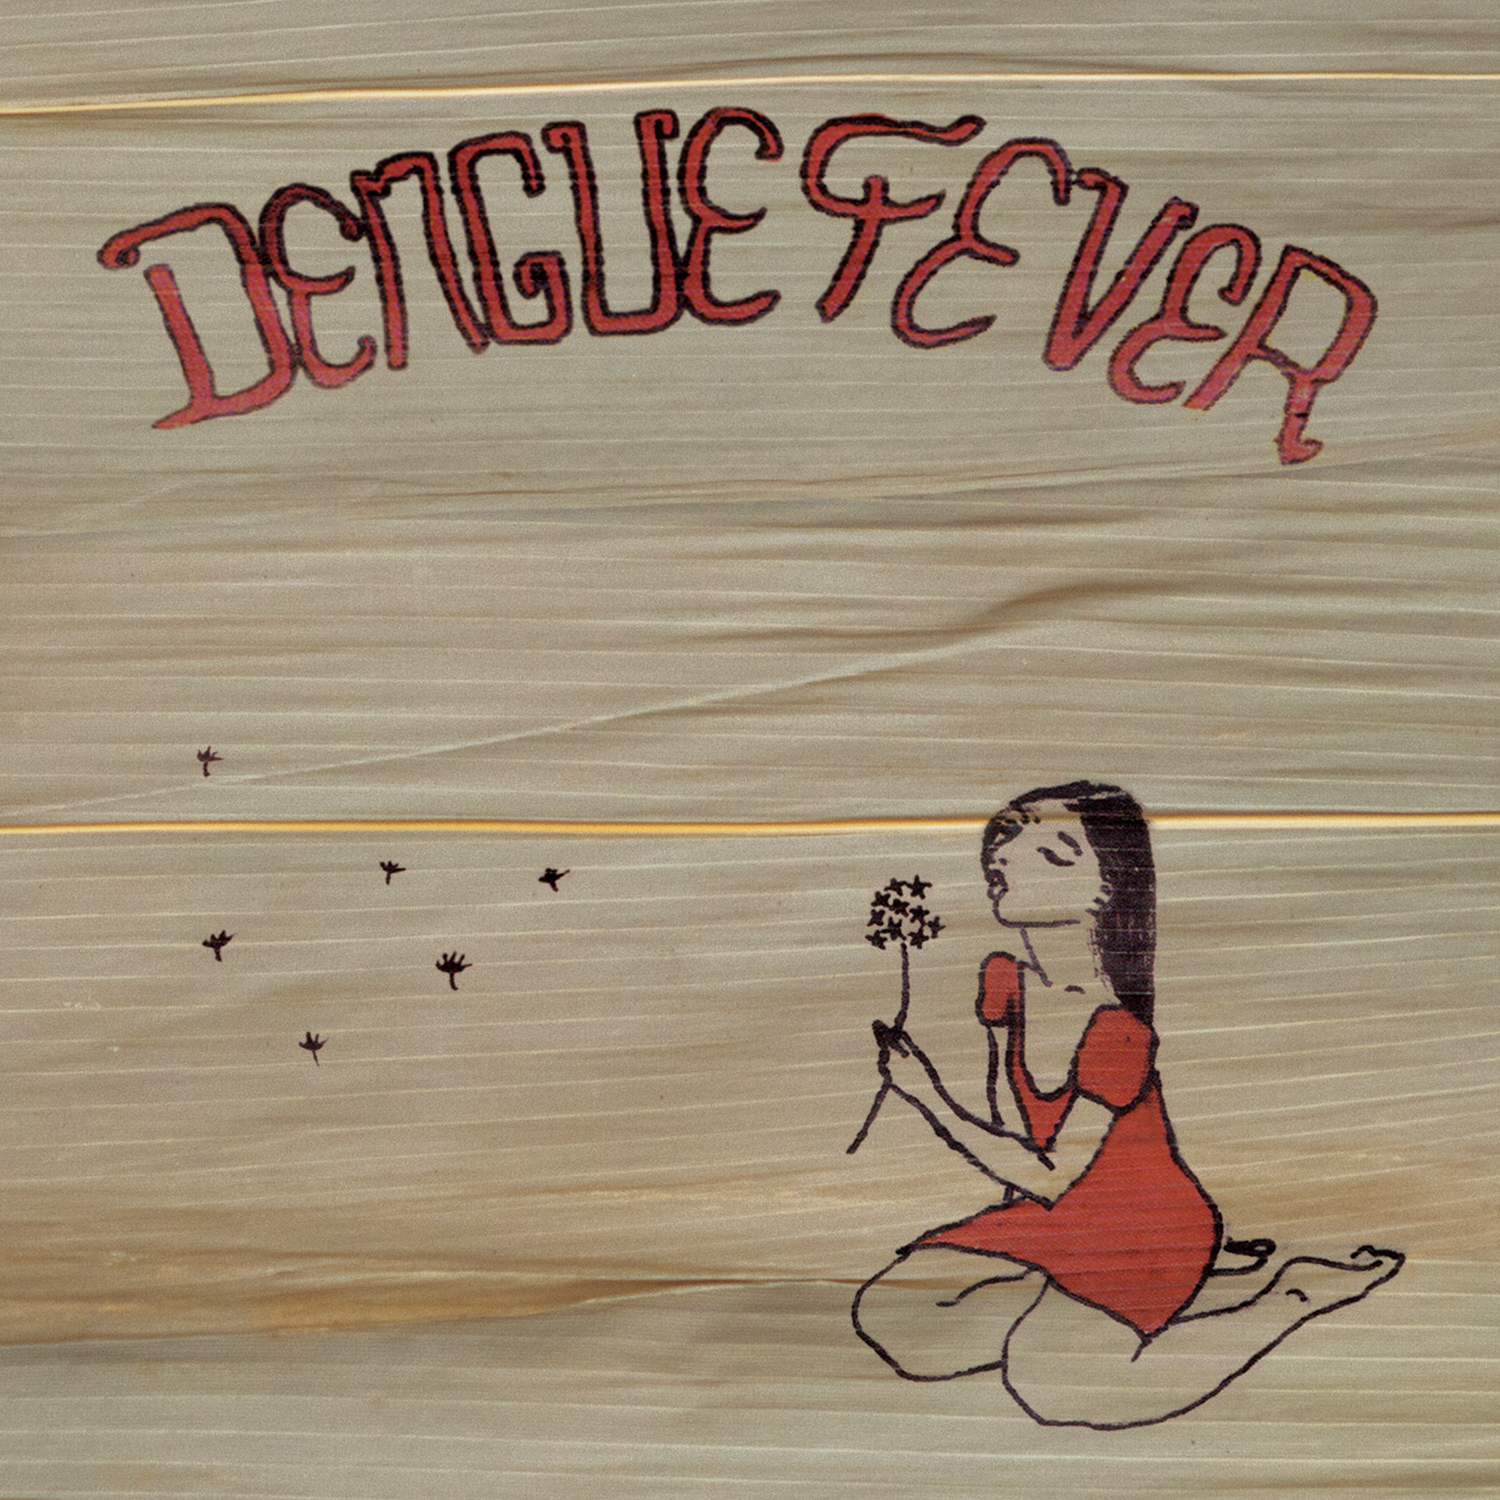 MUSIC NEWS: Dengue Fever Confirm Reissues of Out-of-Print Debut and Sophomore Albums with Bonus Tracks, Expanded Liner Notes & Packaging This Spring